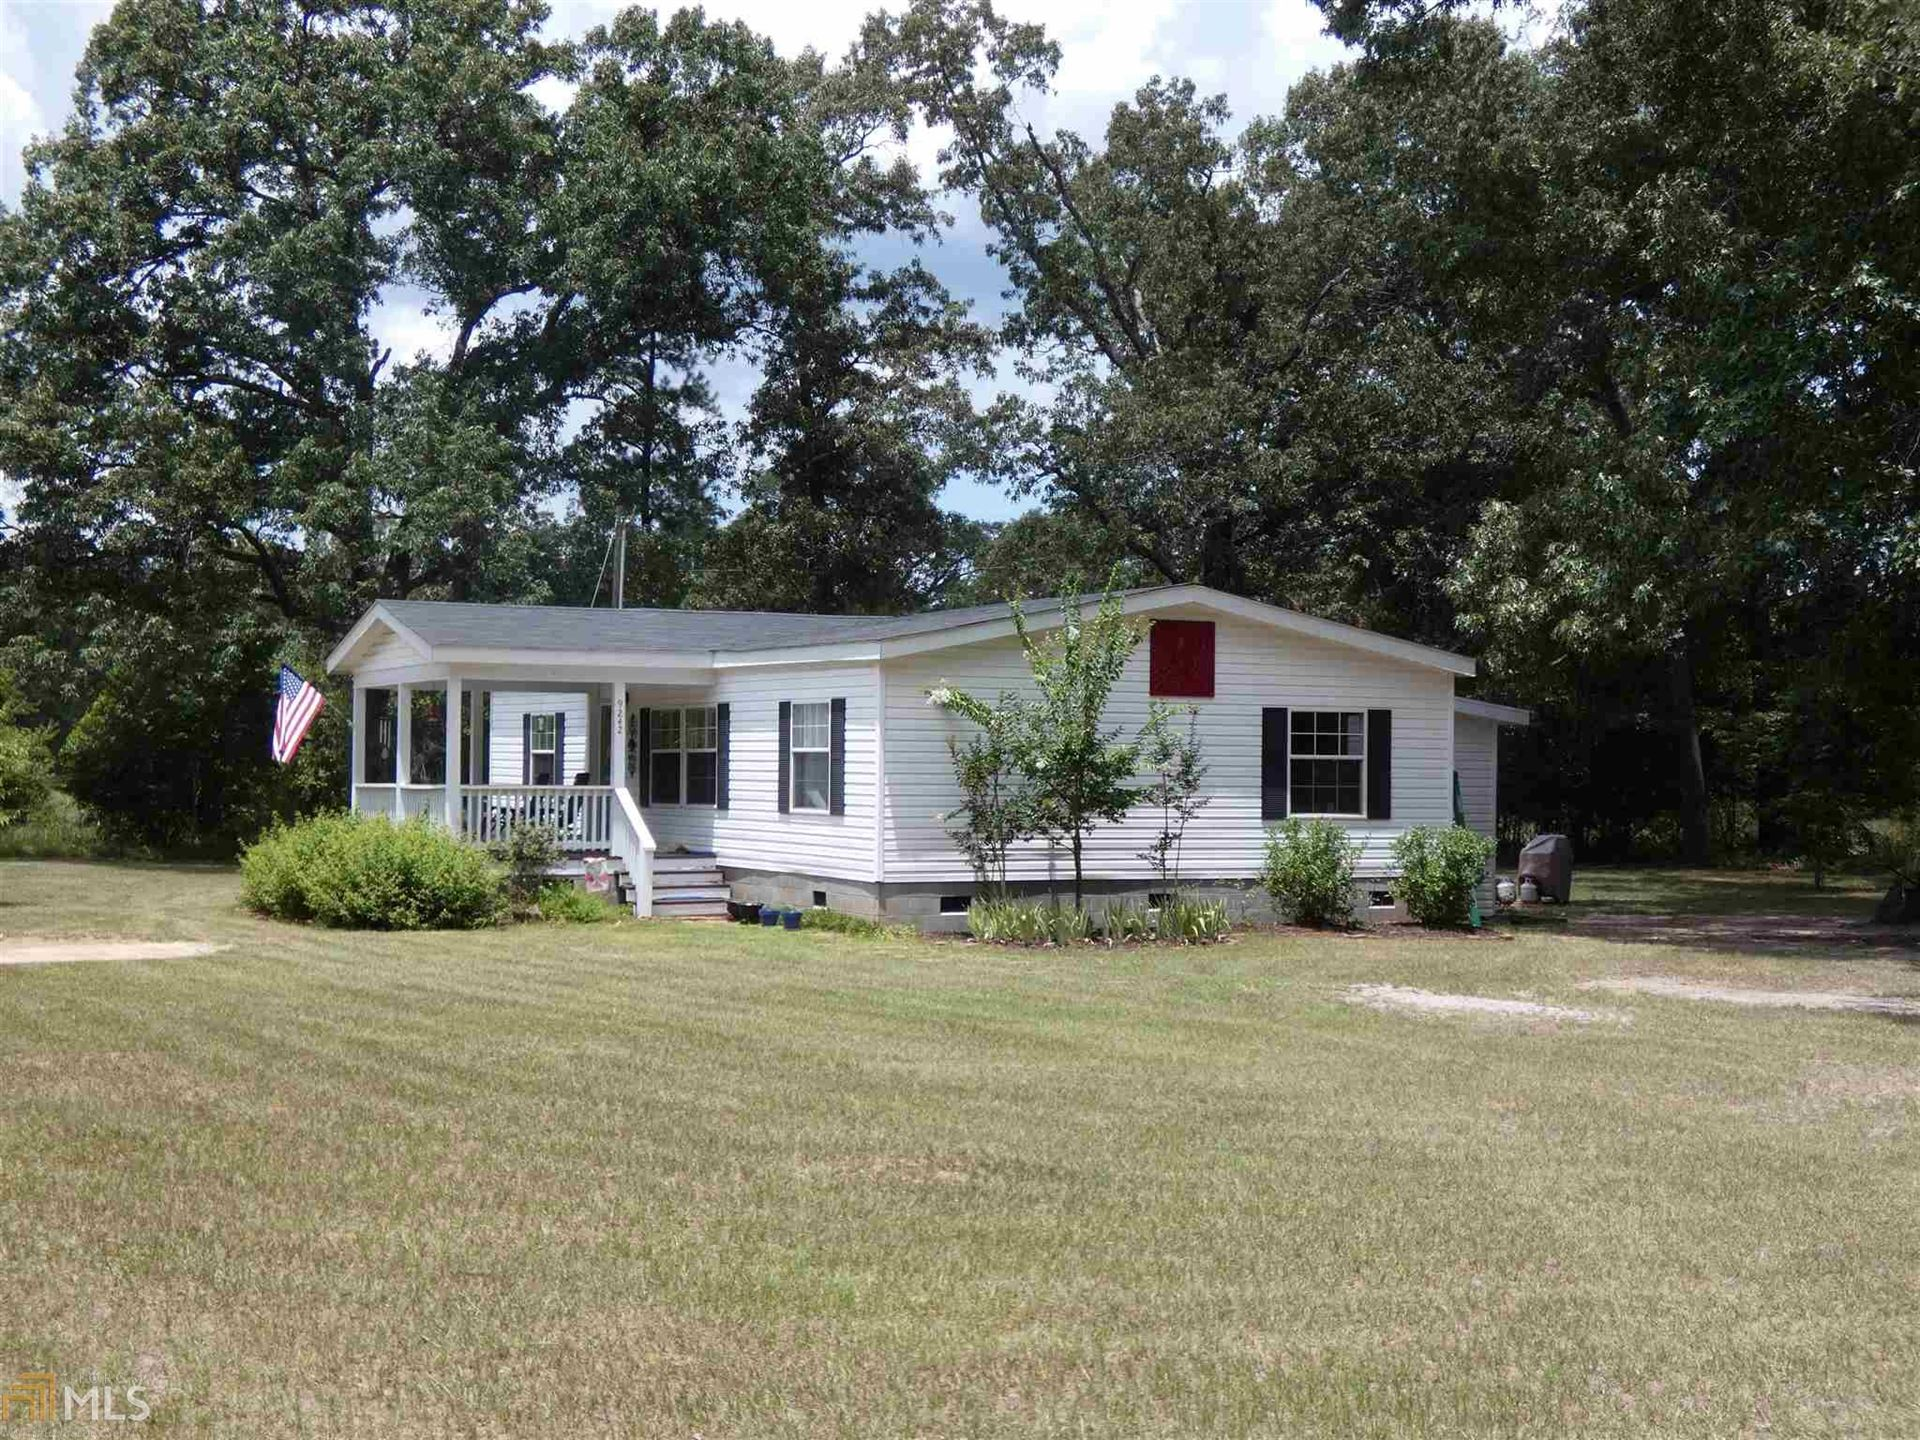 Photo of 9242 S Sparta Davisboro Rd, Warthen, GA 31094 (MLS # 8793323)